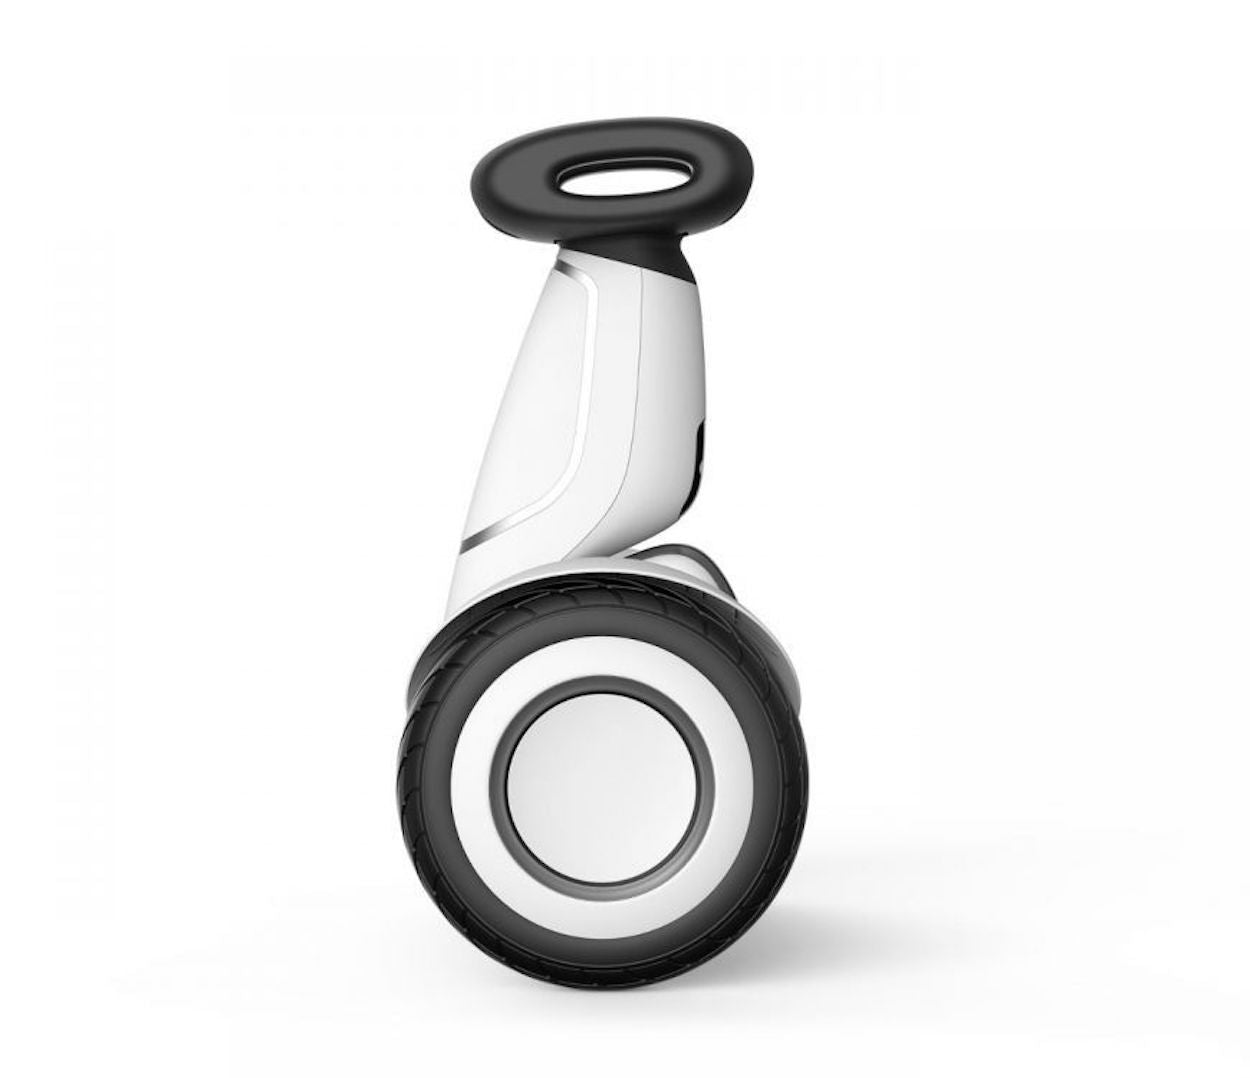 Ninebot S Plus by Segway